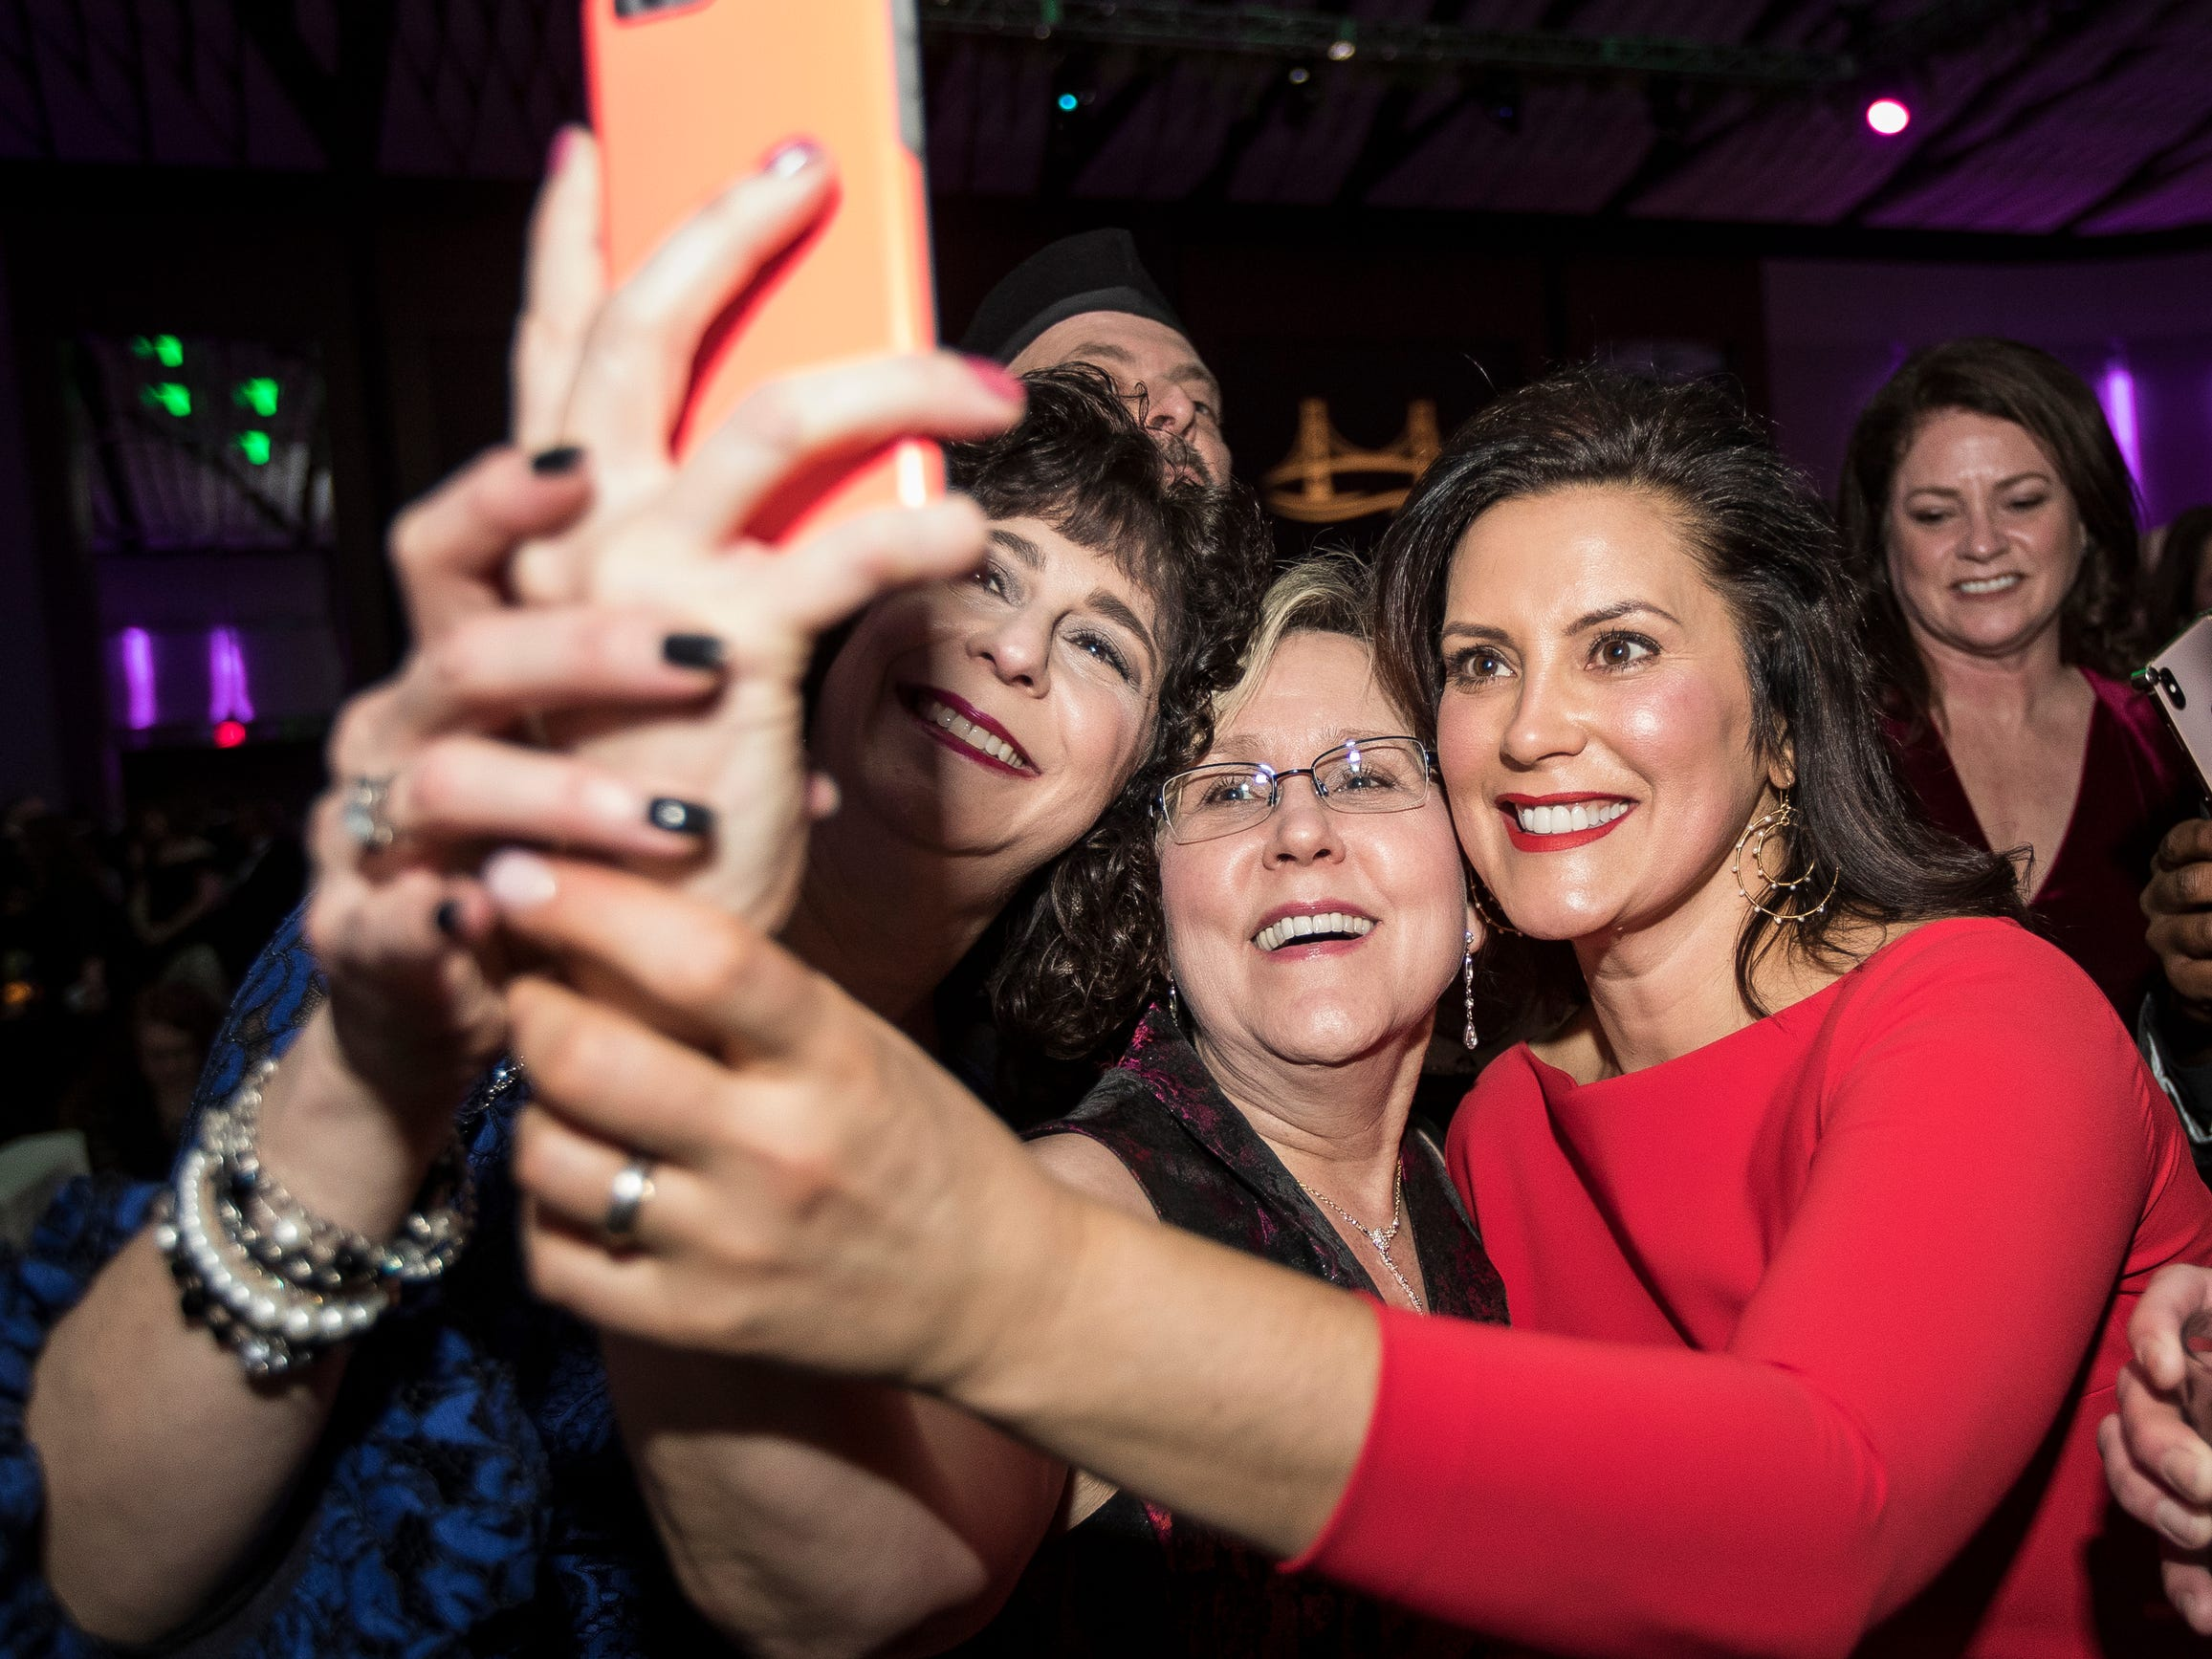 Michigan celebrates inauguration of 49th governor with ball at Cobo